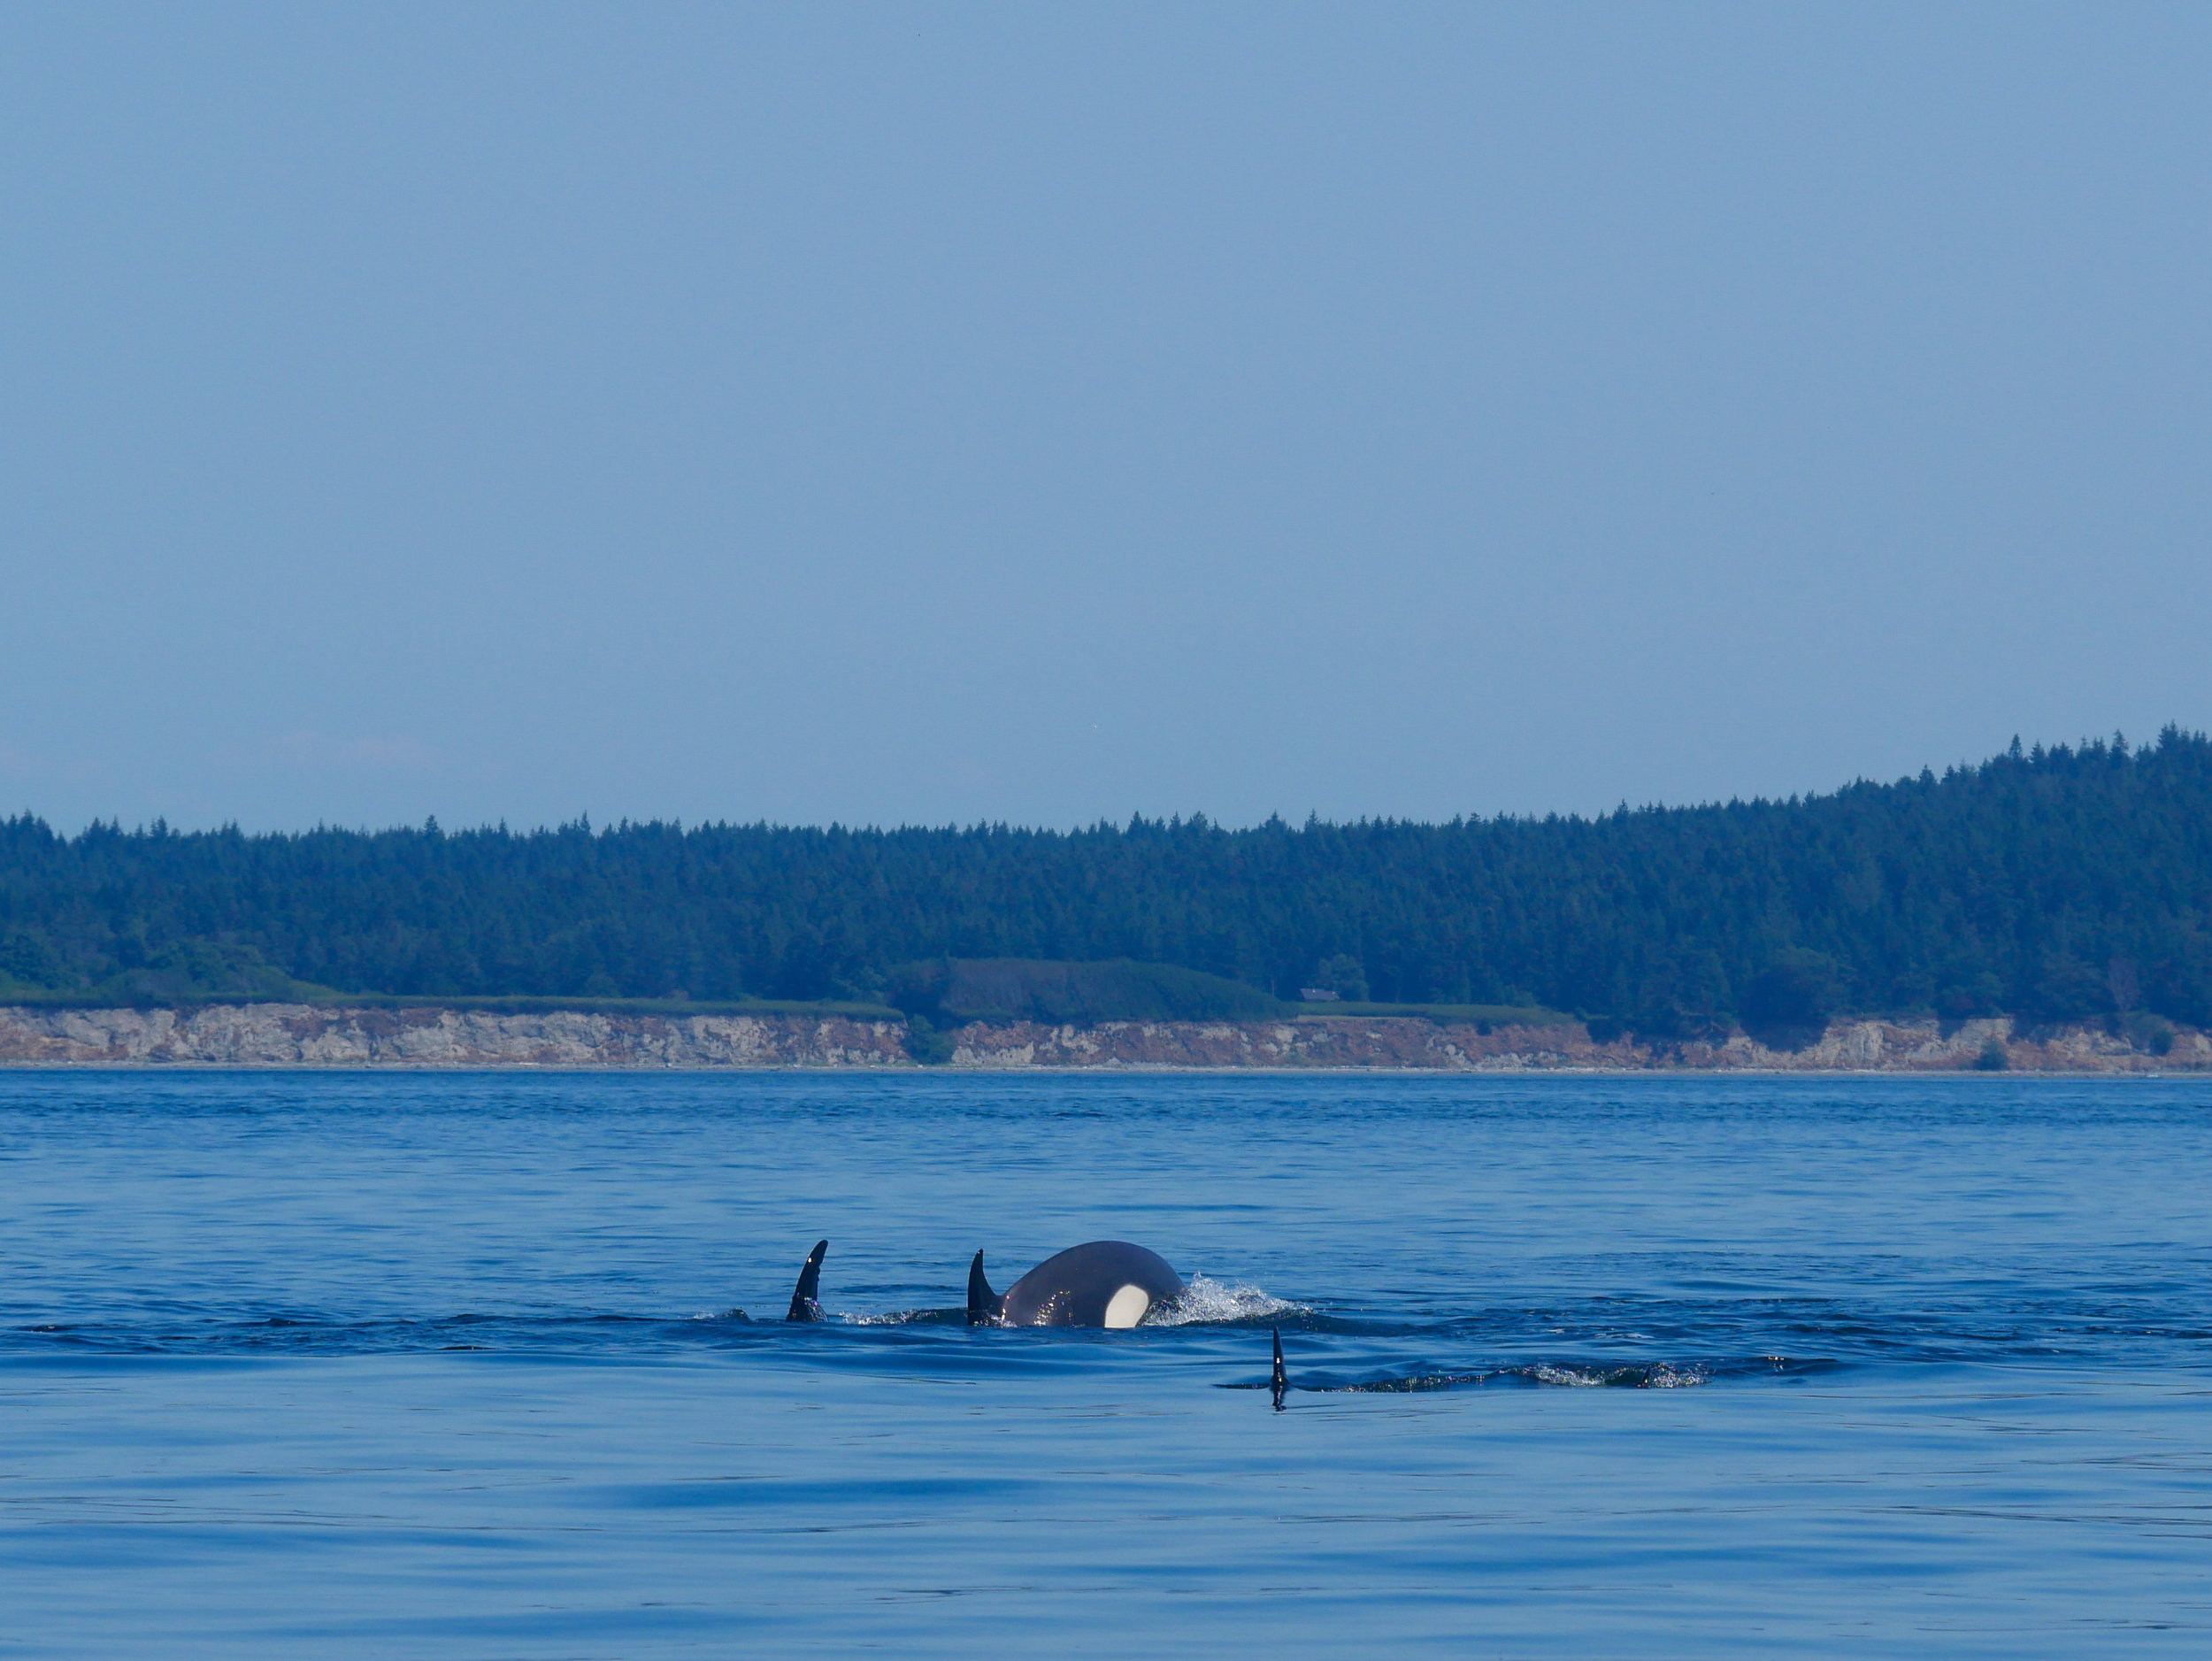 Going for a deep dive means we get to see more of the tail end of the orca. Photo by Val Watson.